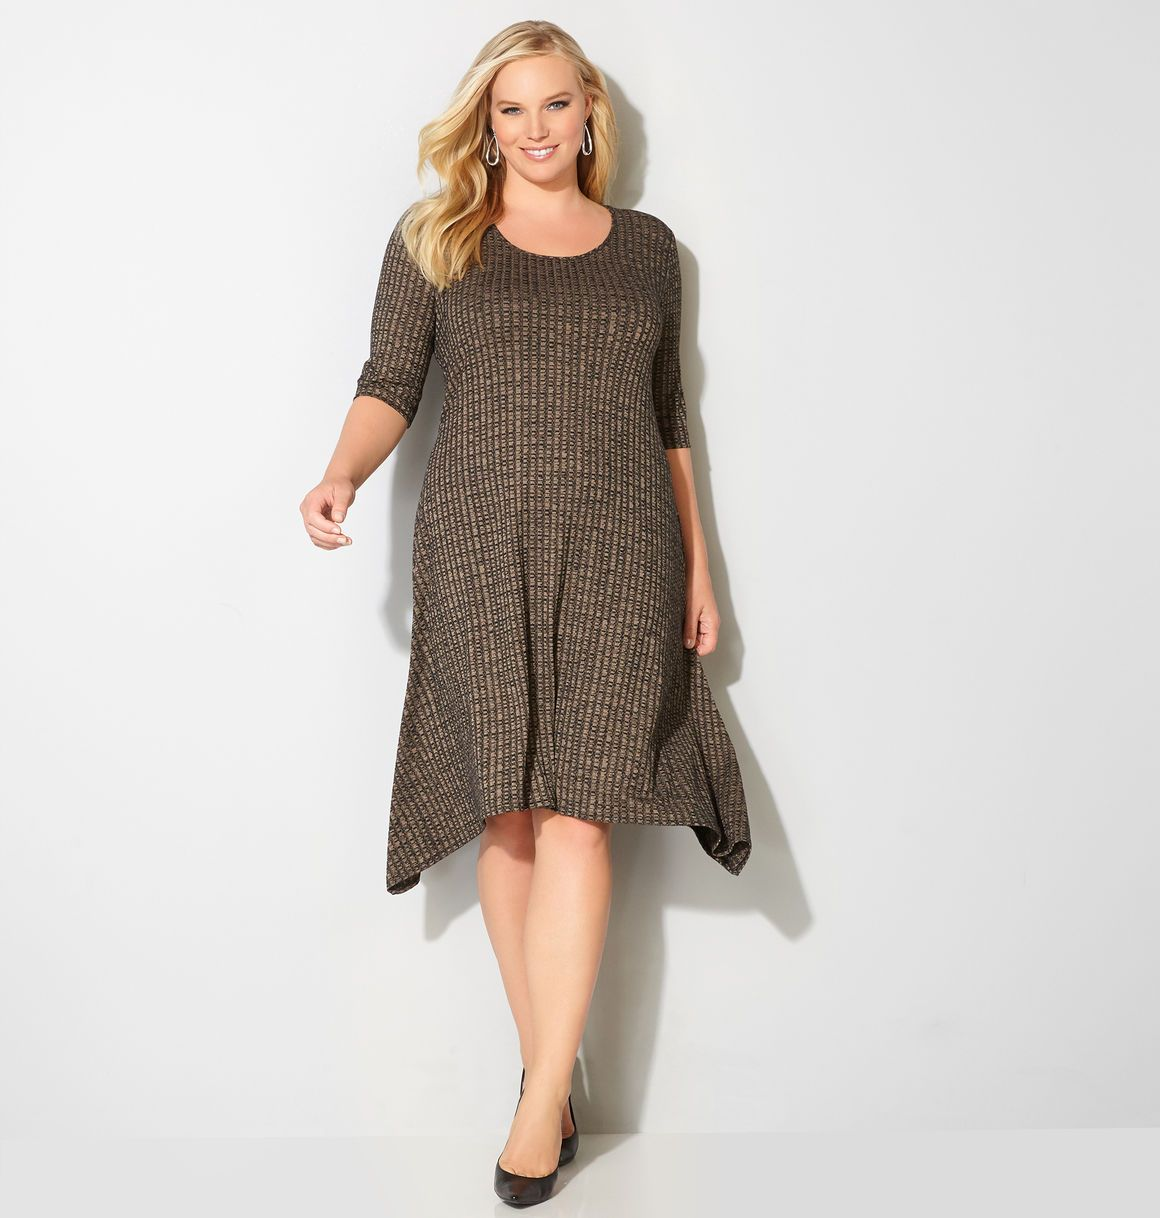 Head to the office or dress up for a party with this pretty new plus size Neutral Sharkbite Sweater Dress available in sizes 14-32 online at avenue.com. Avenue Store